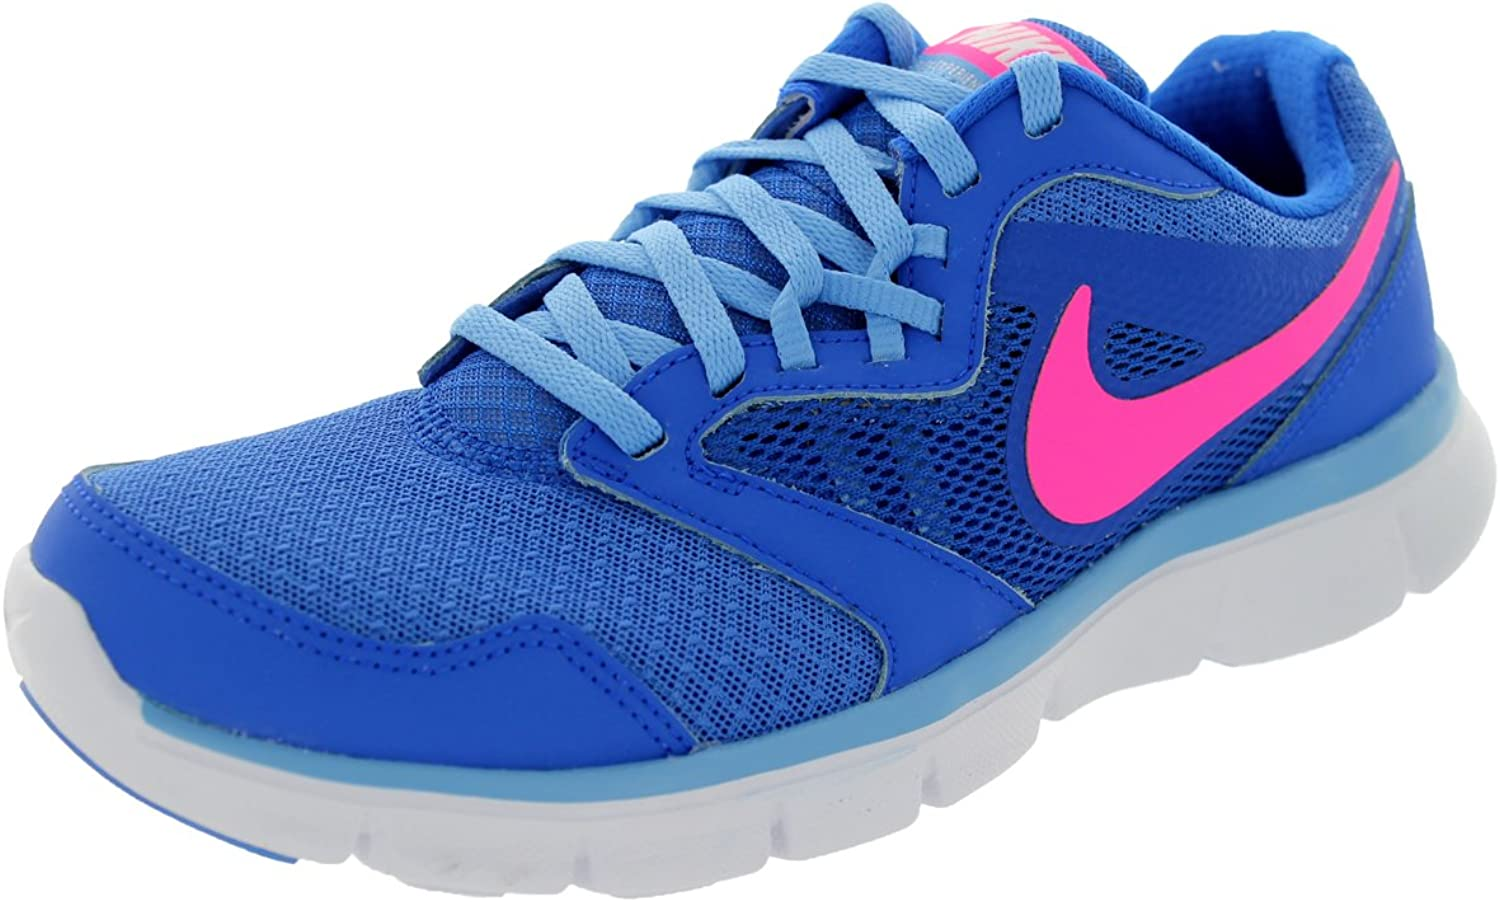 New Nike Women's Flex Experience Run 3 Running shoes bluee Graphite Clearwater